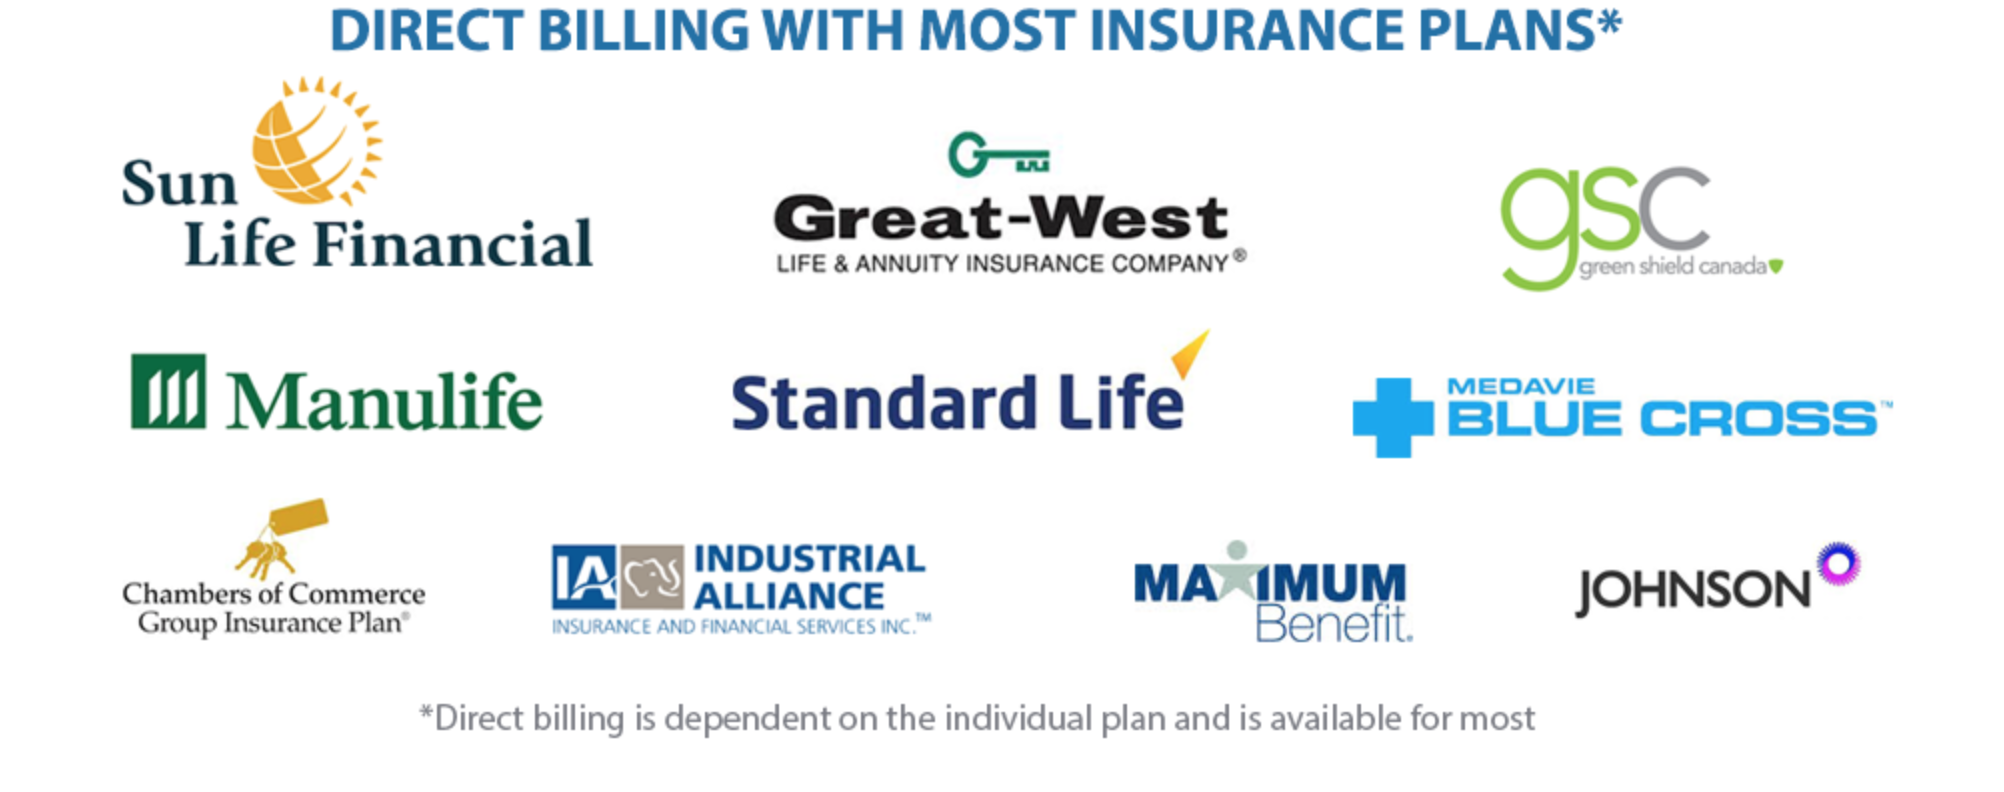 You will be asked to fill out the following information on our online intake form   Insurance Company  Date of birth  Policy/Group #  Member ID  If you are not the insured member, we need the first and last name of the insured member.  *Not all plans allow for direct billing, if your claim needs further processing you will be required to pay for your treatment. We will provide you with a receipt for manual submission.  *If your plan does not cover 100% of the treatment cost you will be required to pay the balance.  *We require a credit card number to store securely in the case that your billing doesn't go through. If this is the case you would be notified prior to being charged.  *For further information call 403-675-7778 or email mindfulmassagecanmore@gmail.com   Click on the link below to book online.